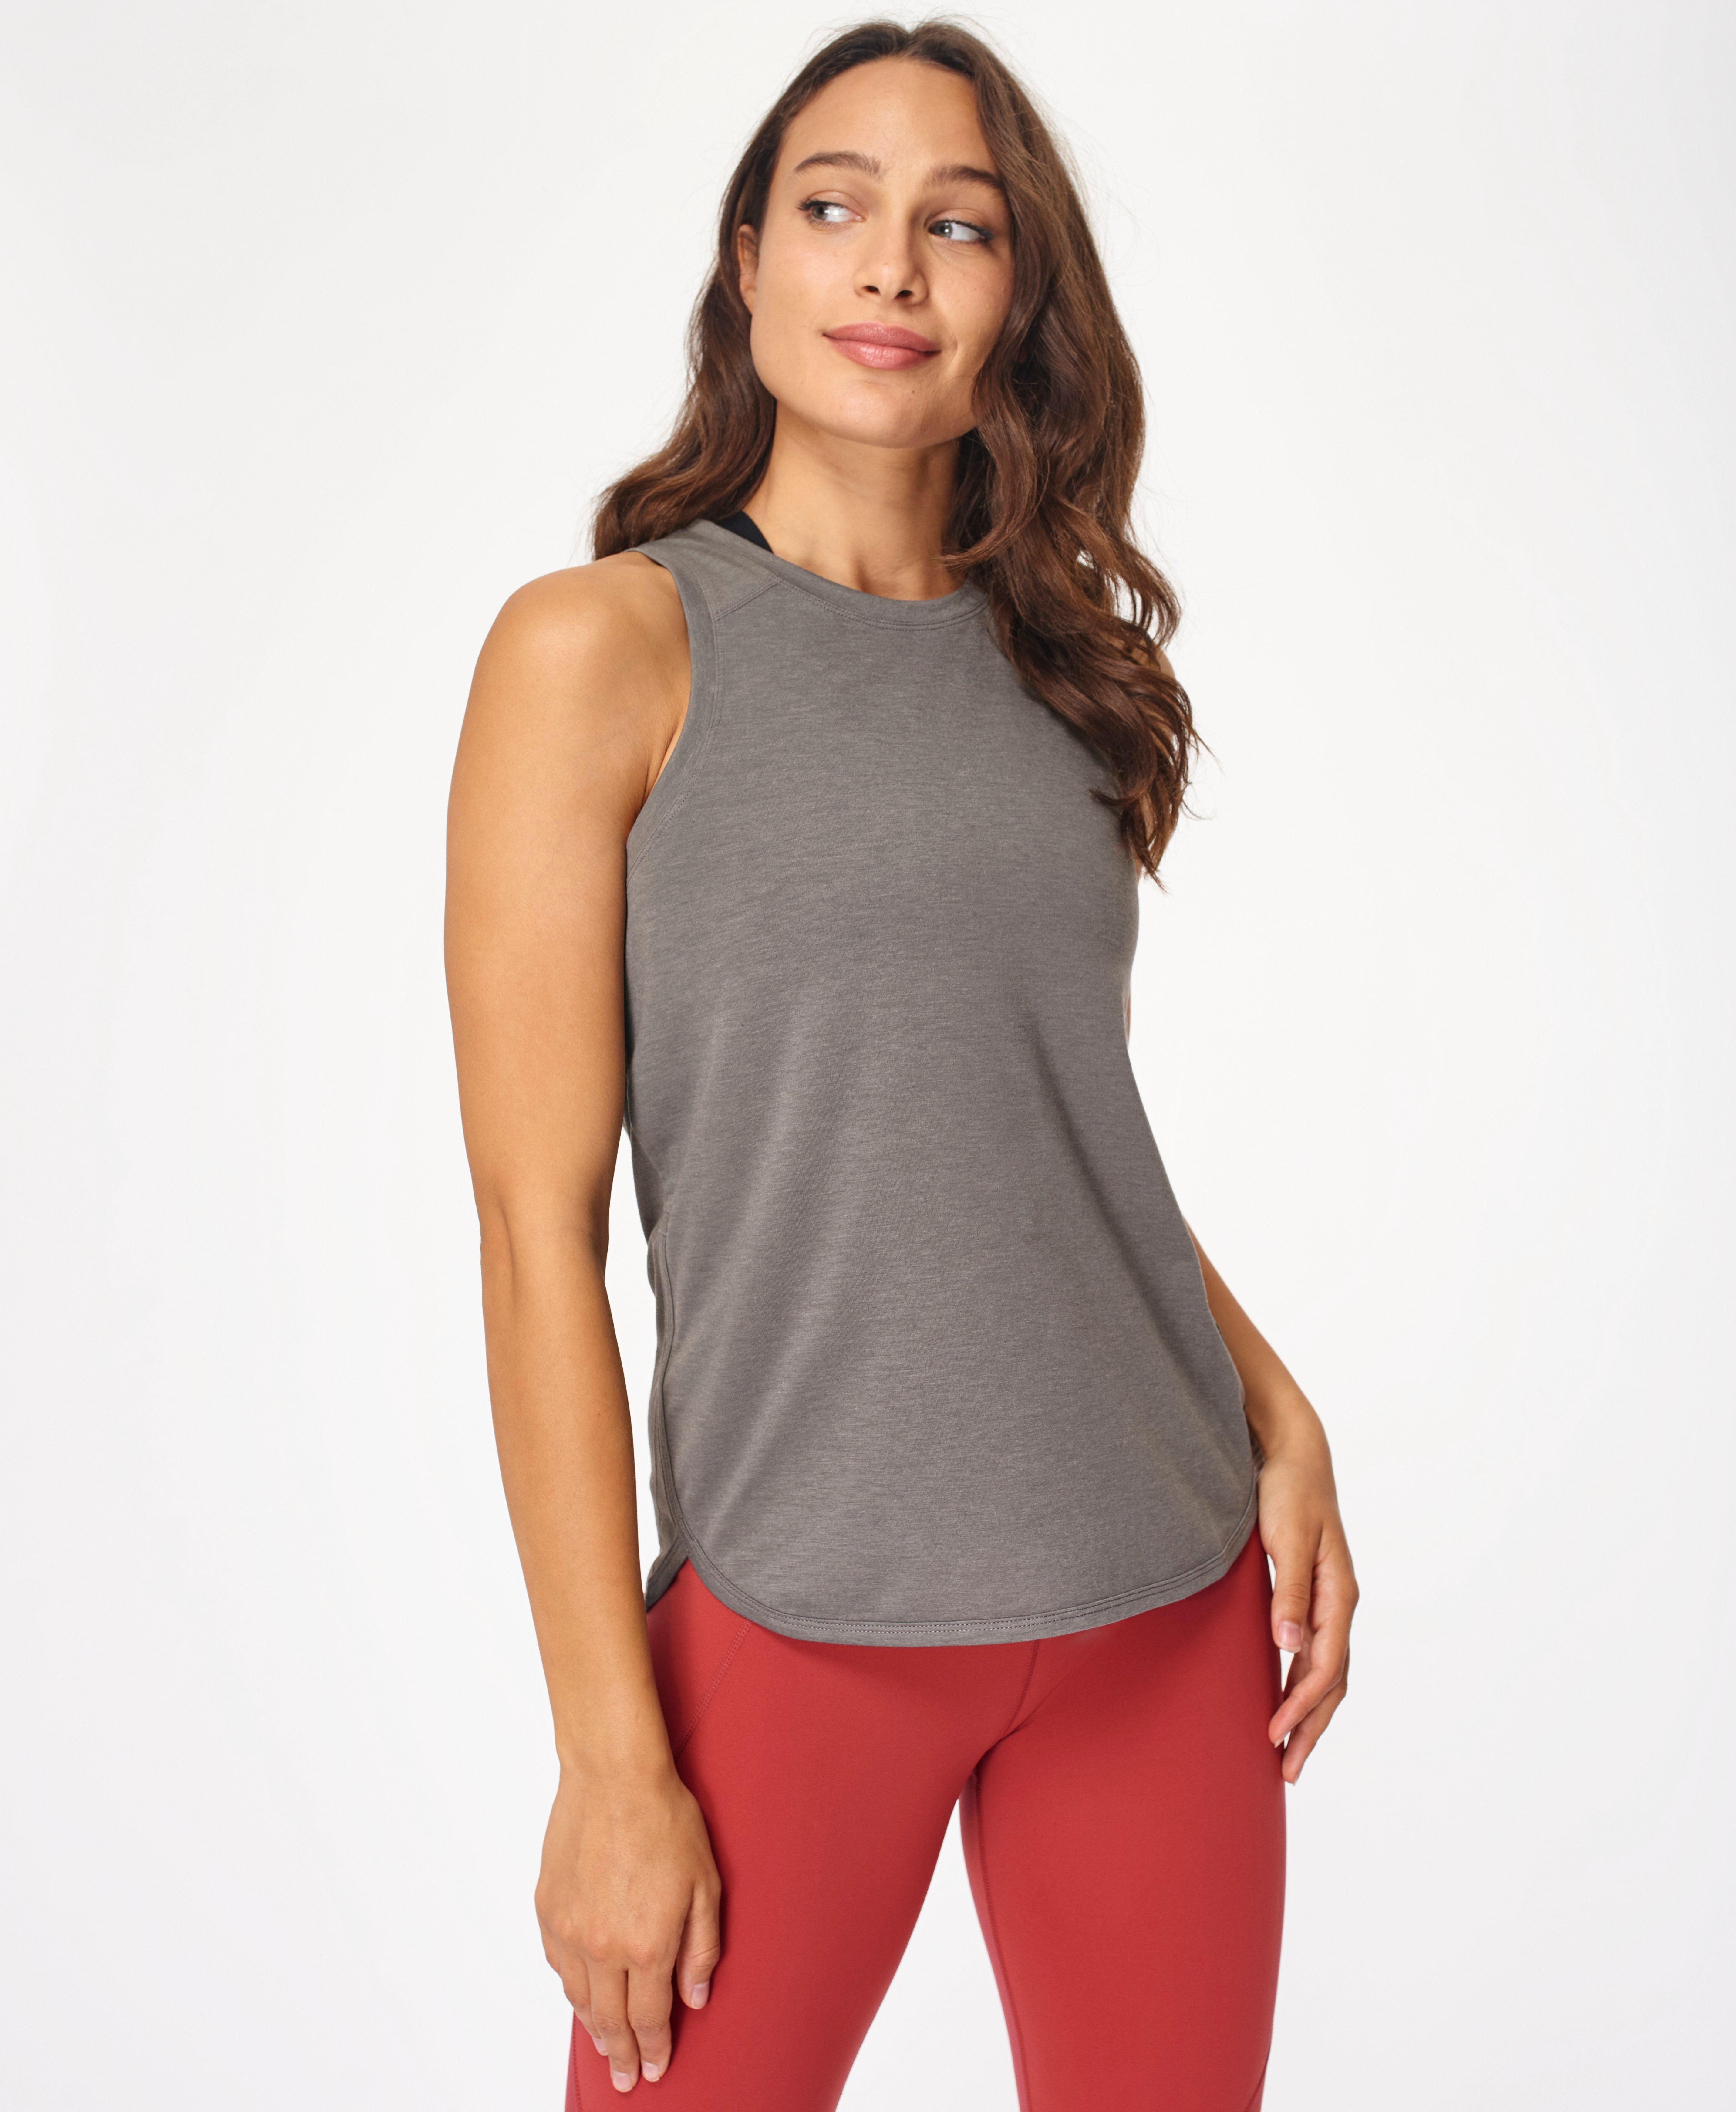 Embrace your sweaty workouts in the loose fitting tank made for high-intensity workouts. In sweat-wicking and quick drying fabric, this is perfect for layering with a dropped hem and wide straps that cover your sports bra.